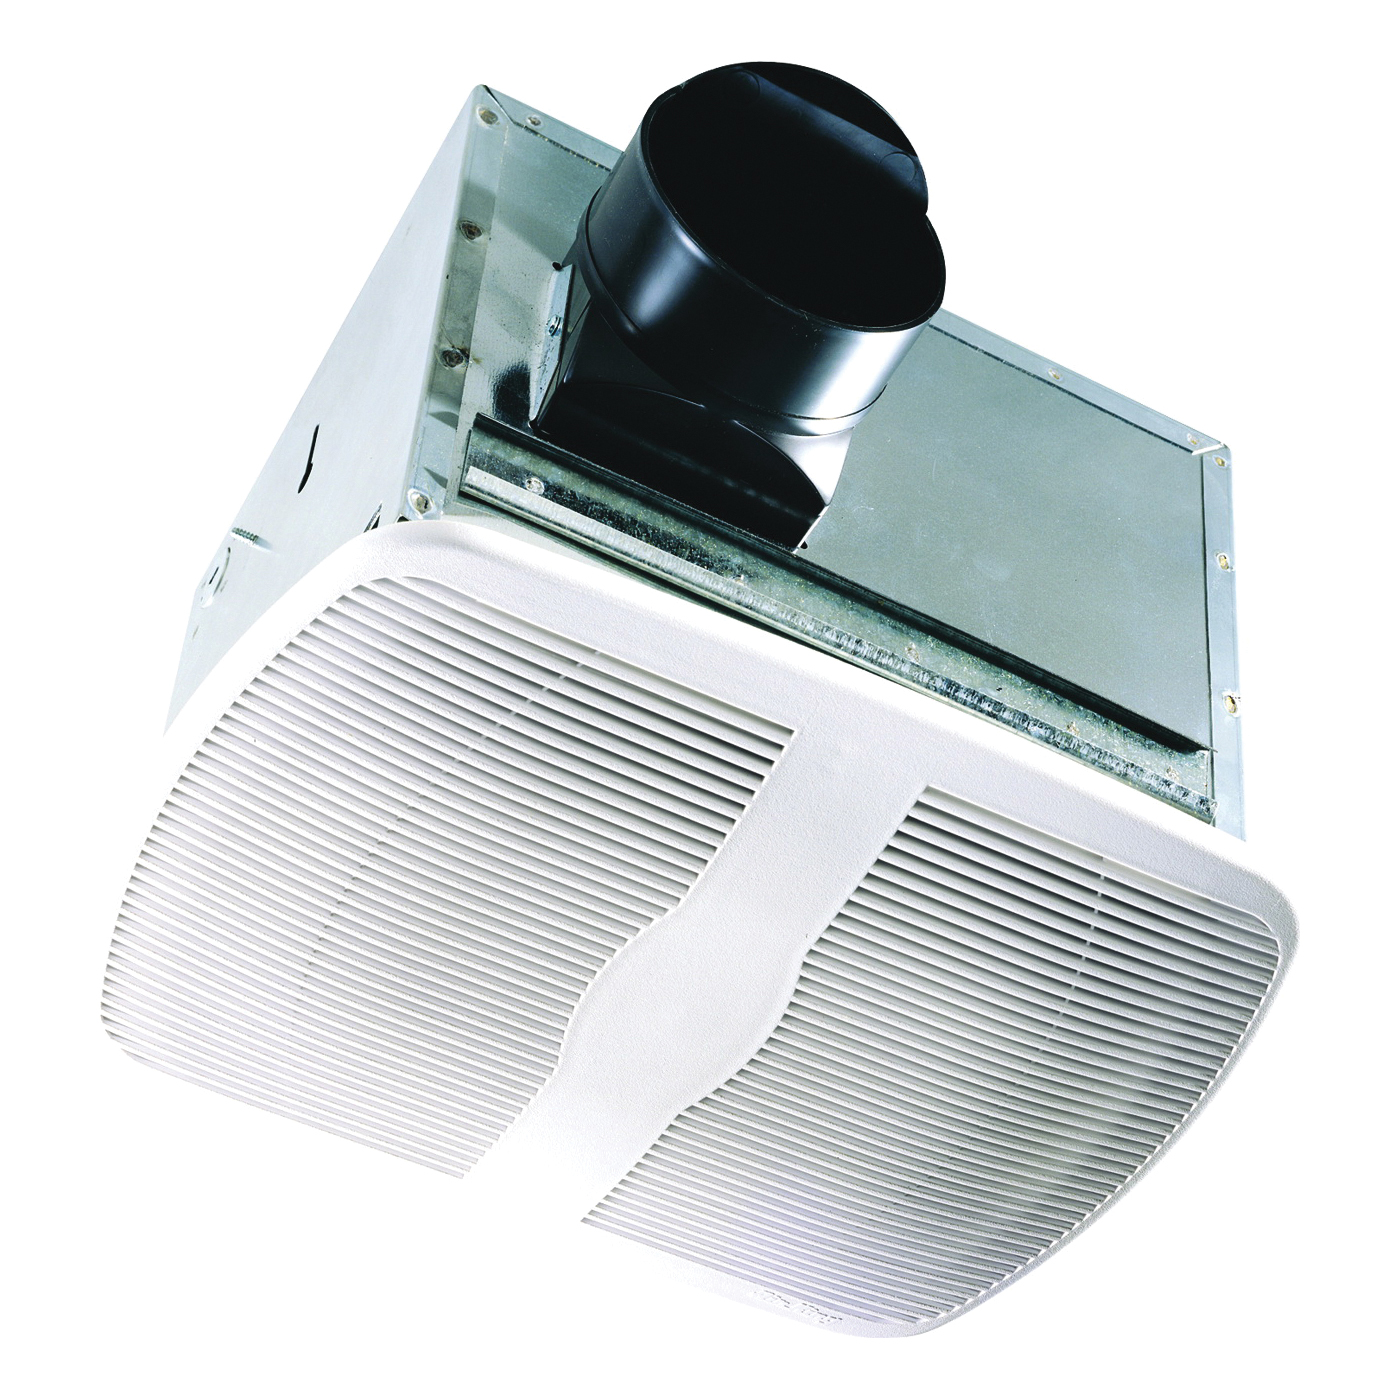 Picture of Air King AK80H Exhaust Fan, 9.4 in L, 10.88 in W, 0.3 A, 120 V, 70 cfm Air, Metal, White